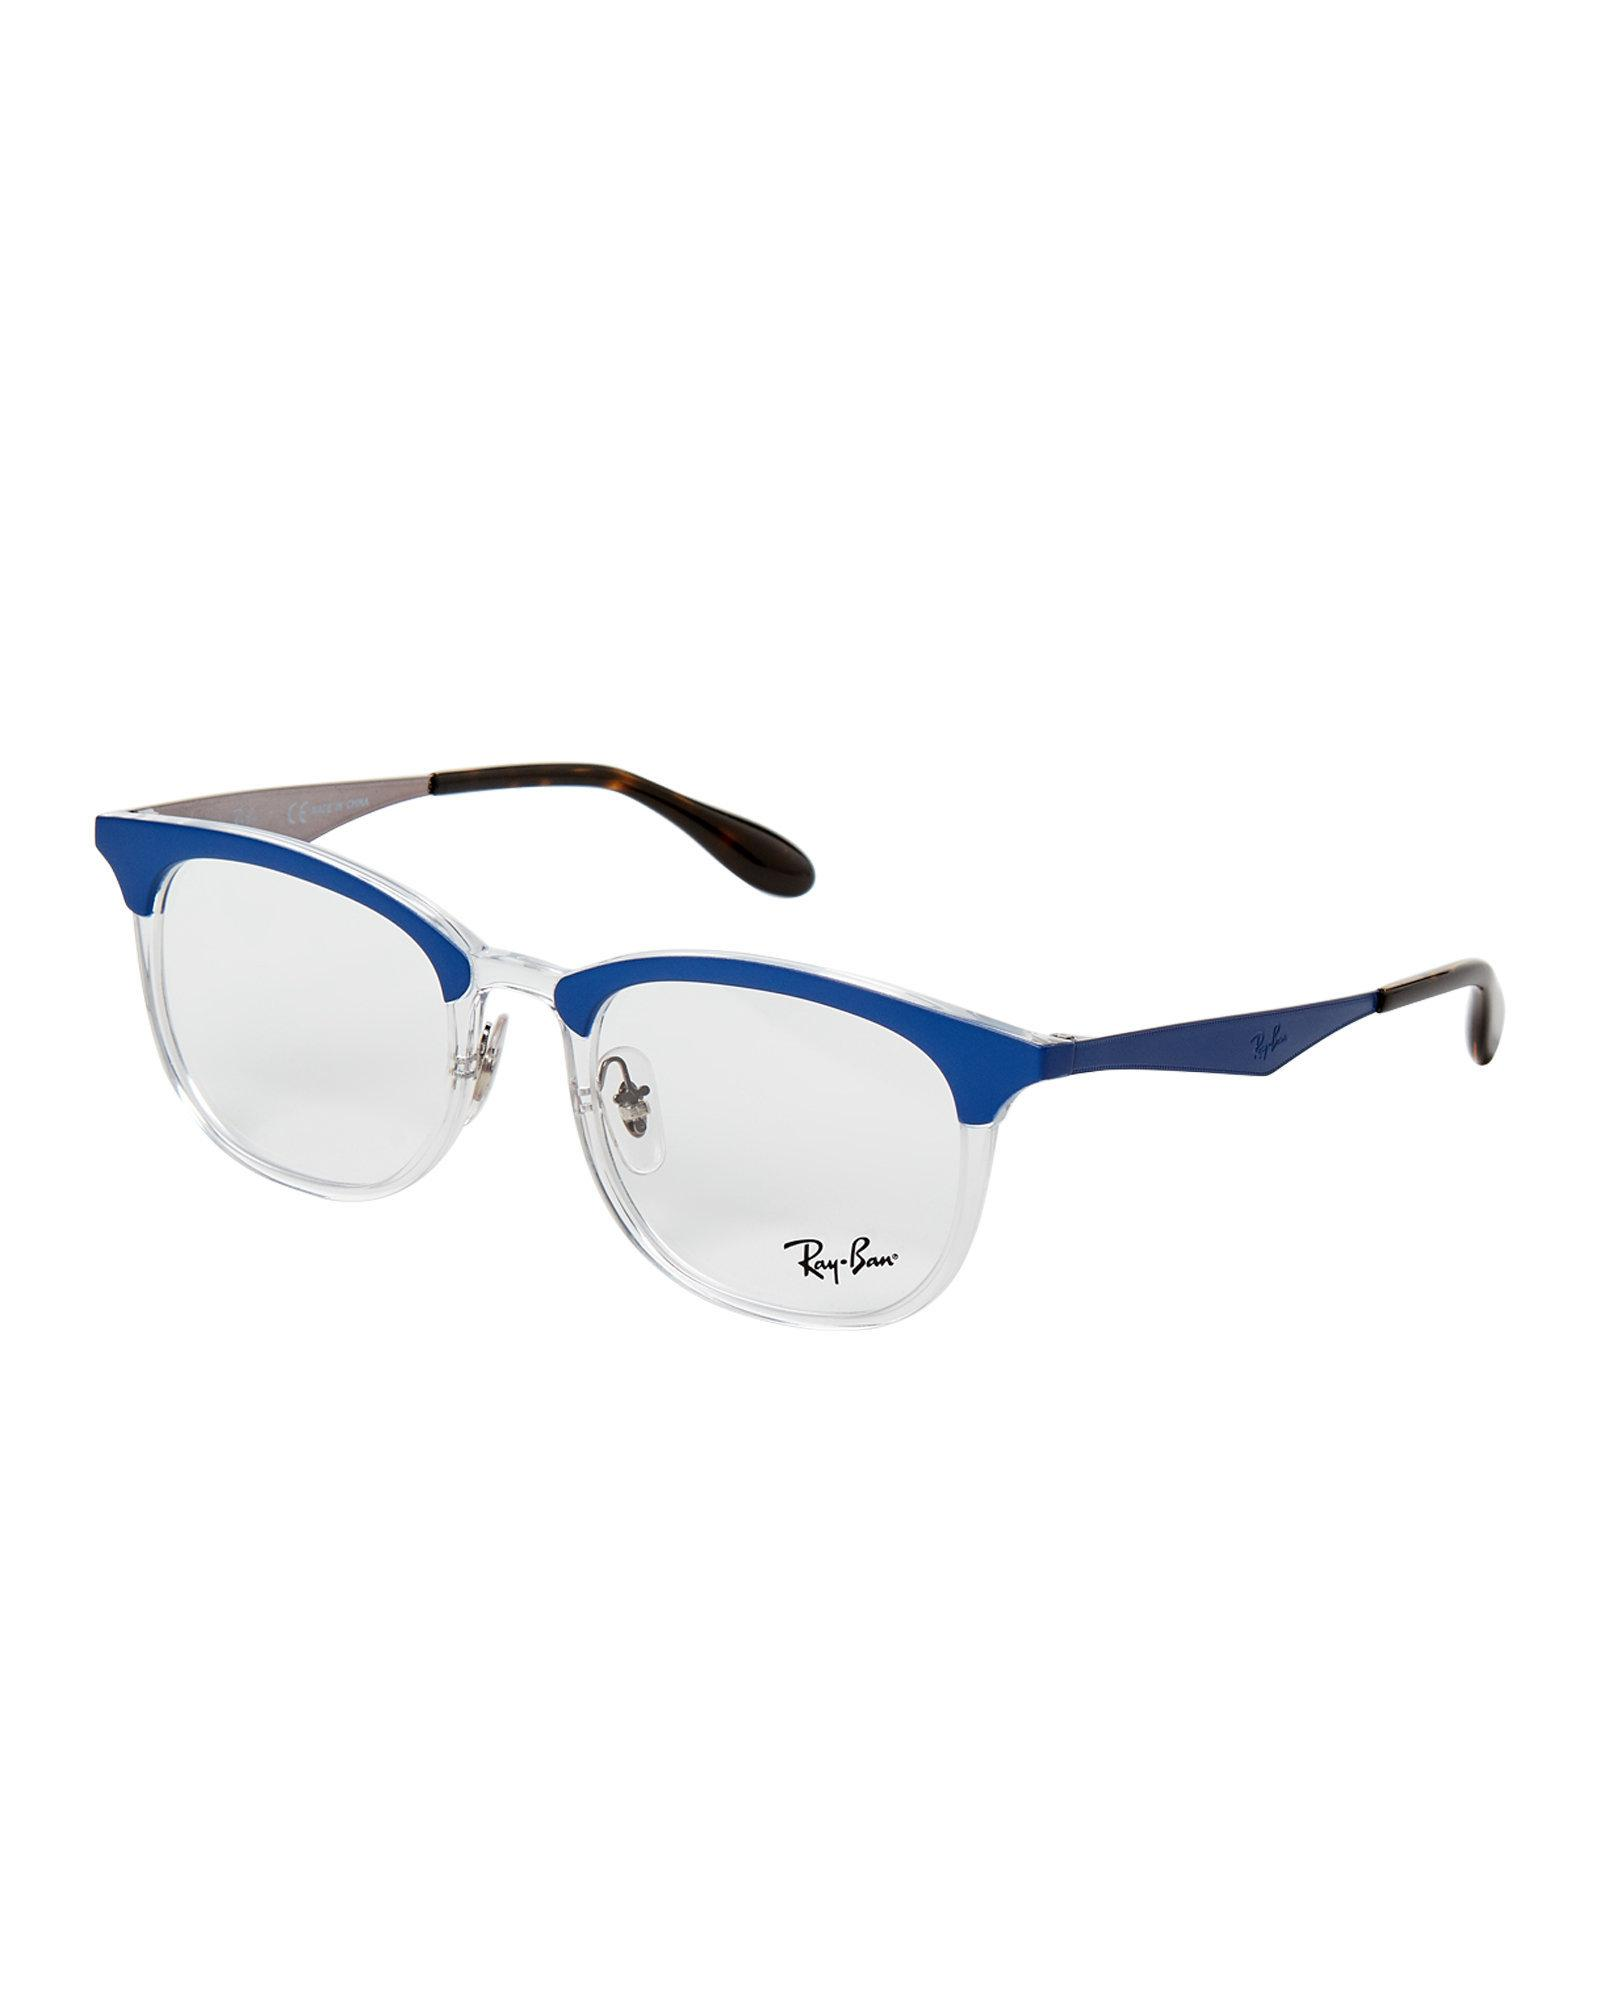 f709d644f6b Lyst - Ray-Ban Rb 7112 Blue   Clear Round Optical Frames in Blue for